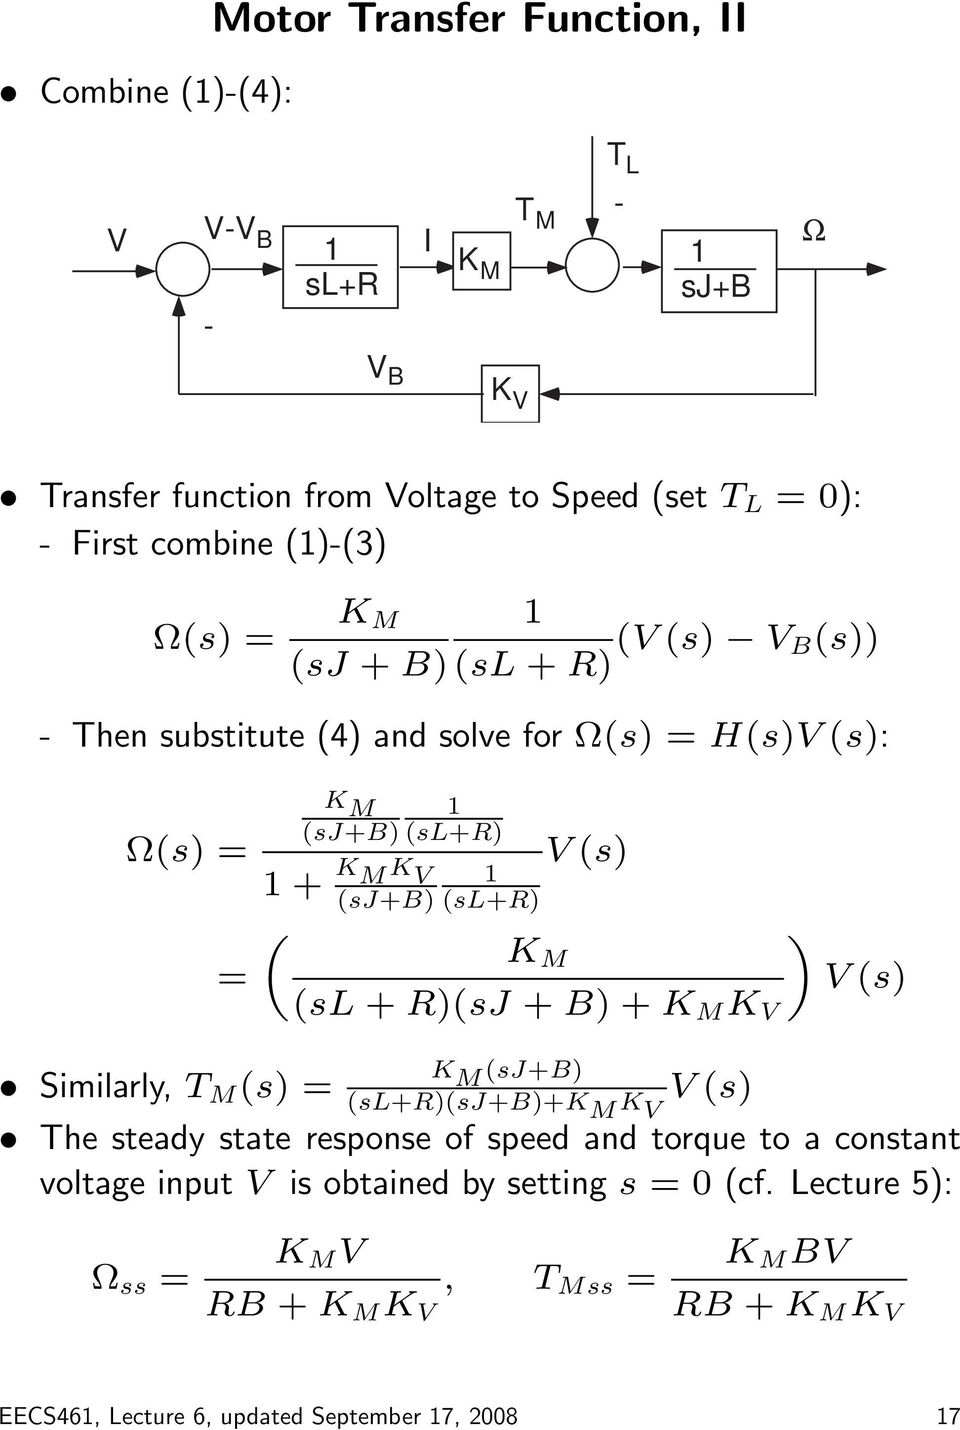 V (s) (sl + R)(sJ + B) + K M K V «V (s) K Similarly, T M (s) = M (sj+b) (sl+r)(sj+b)+k M K V (s) V The steady state response of speed and torque to a constant